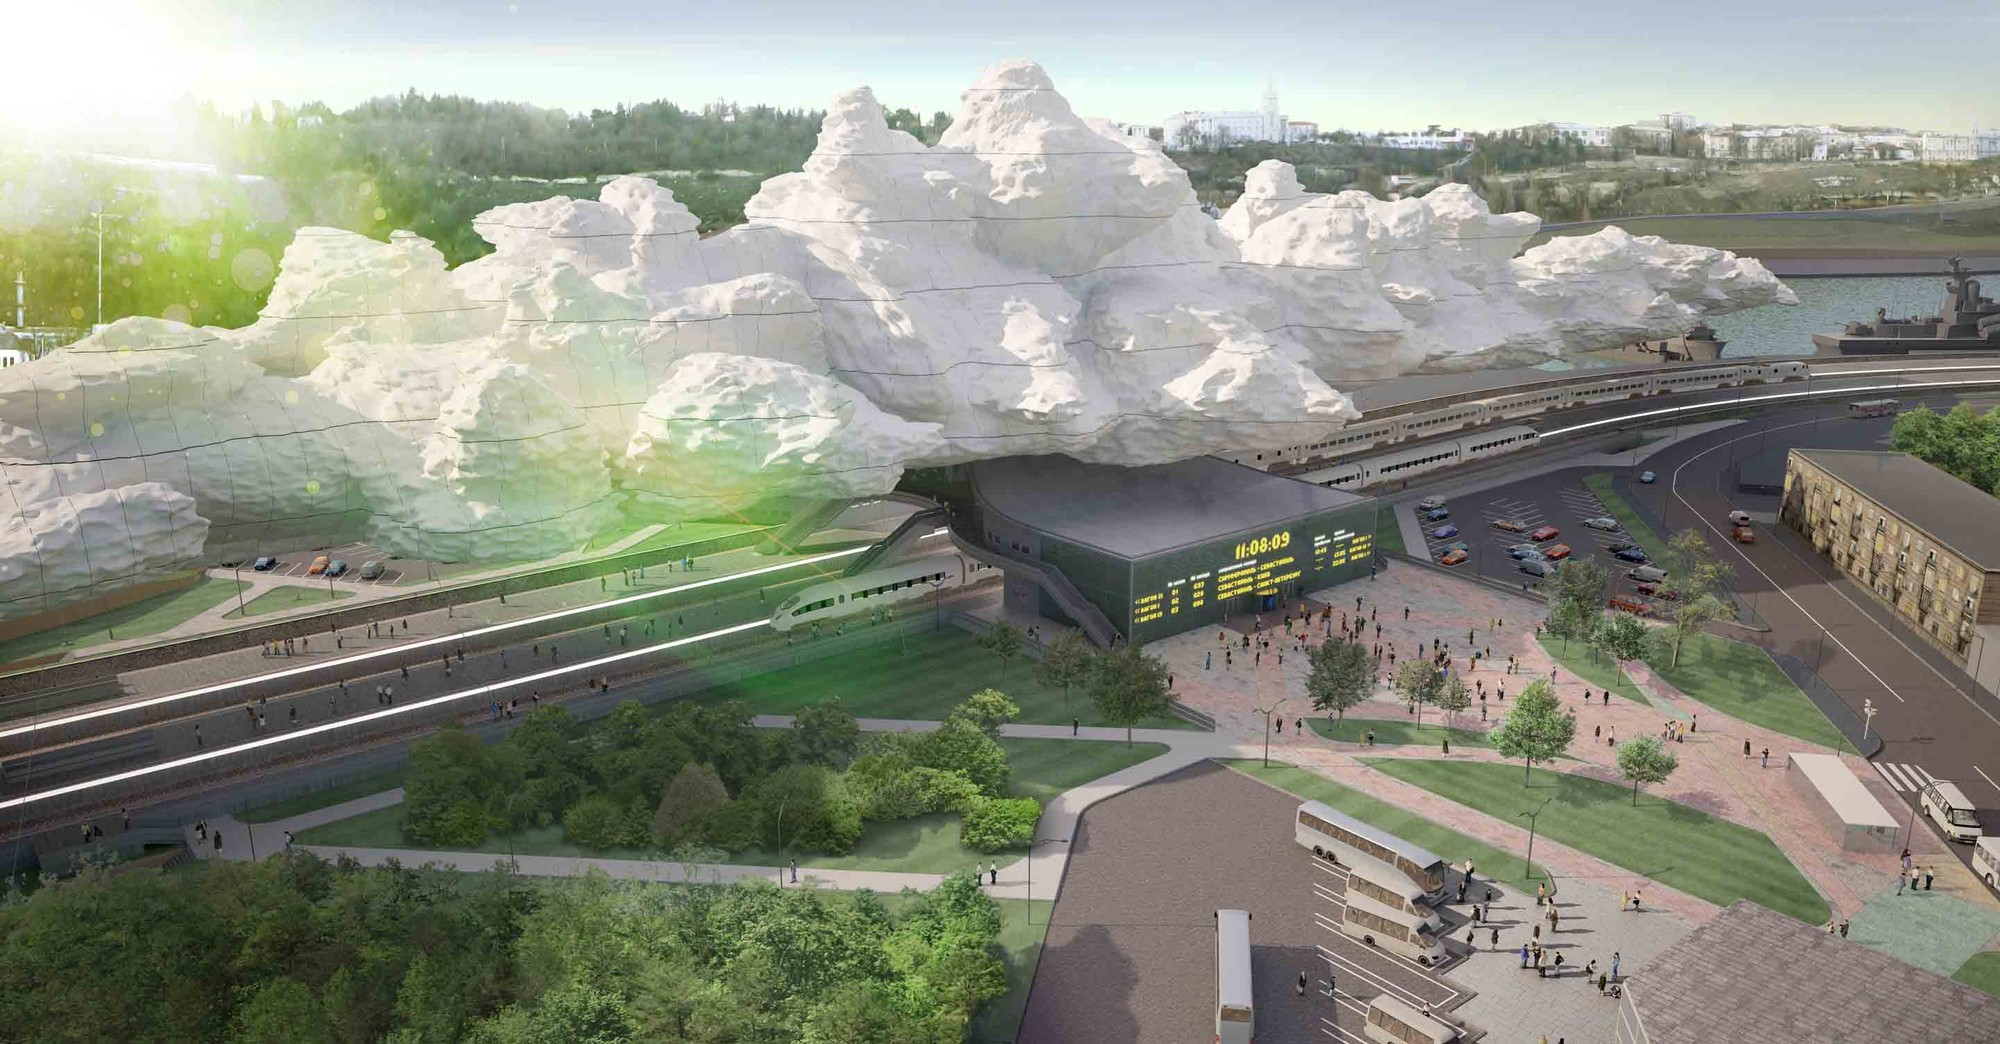 'Under the Cloud' Railway Station Proposal / Arthur Kupreychuk, Courtesy of Arthur Kupreychuk